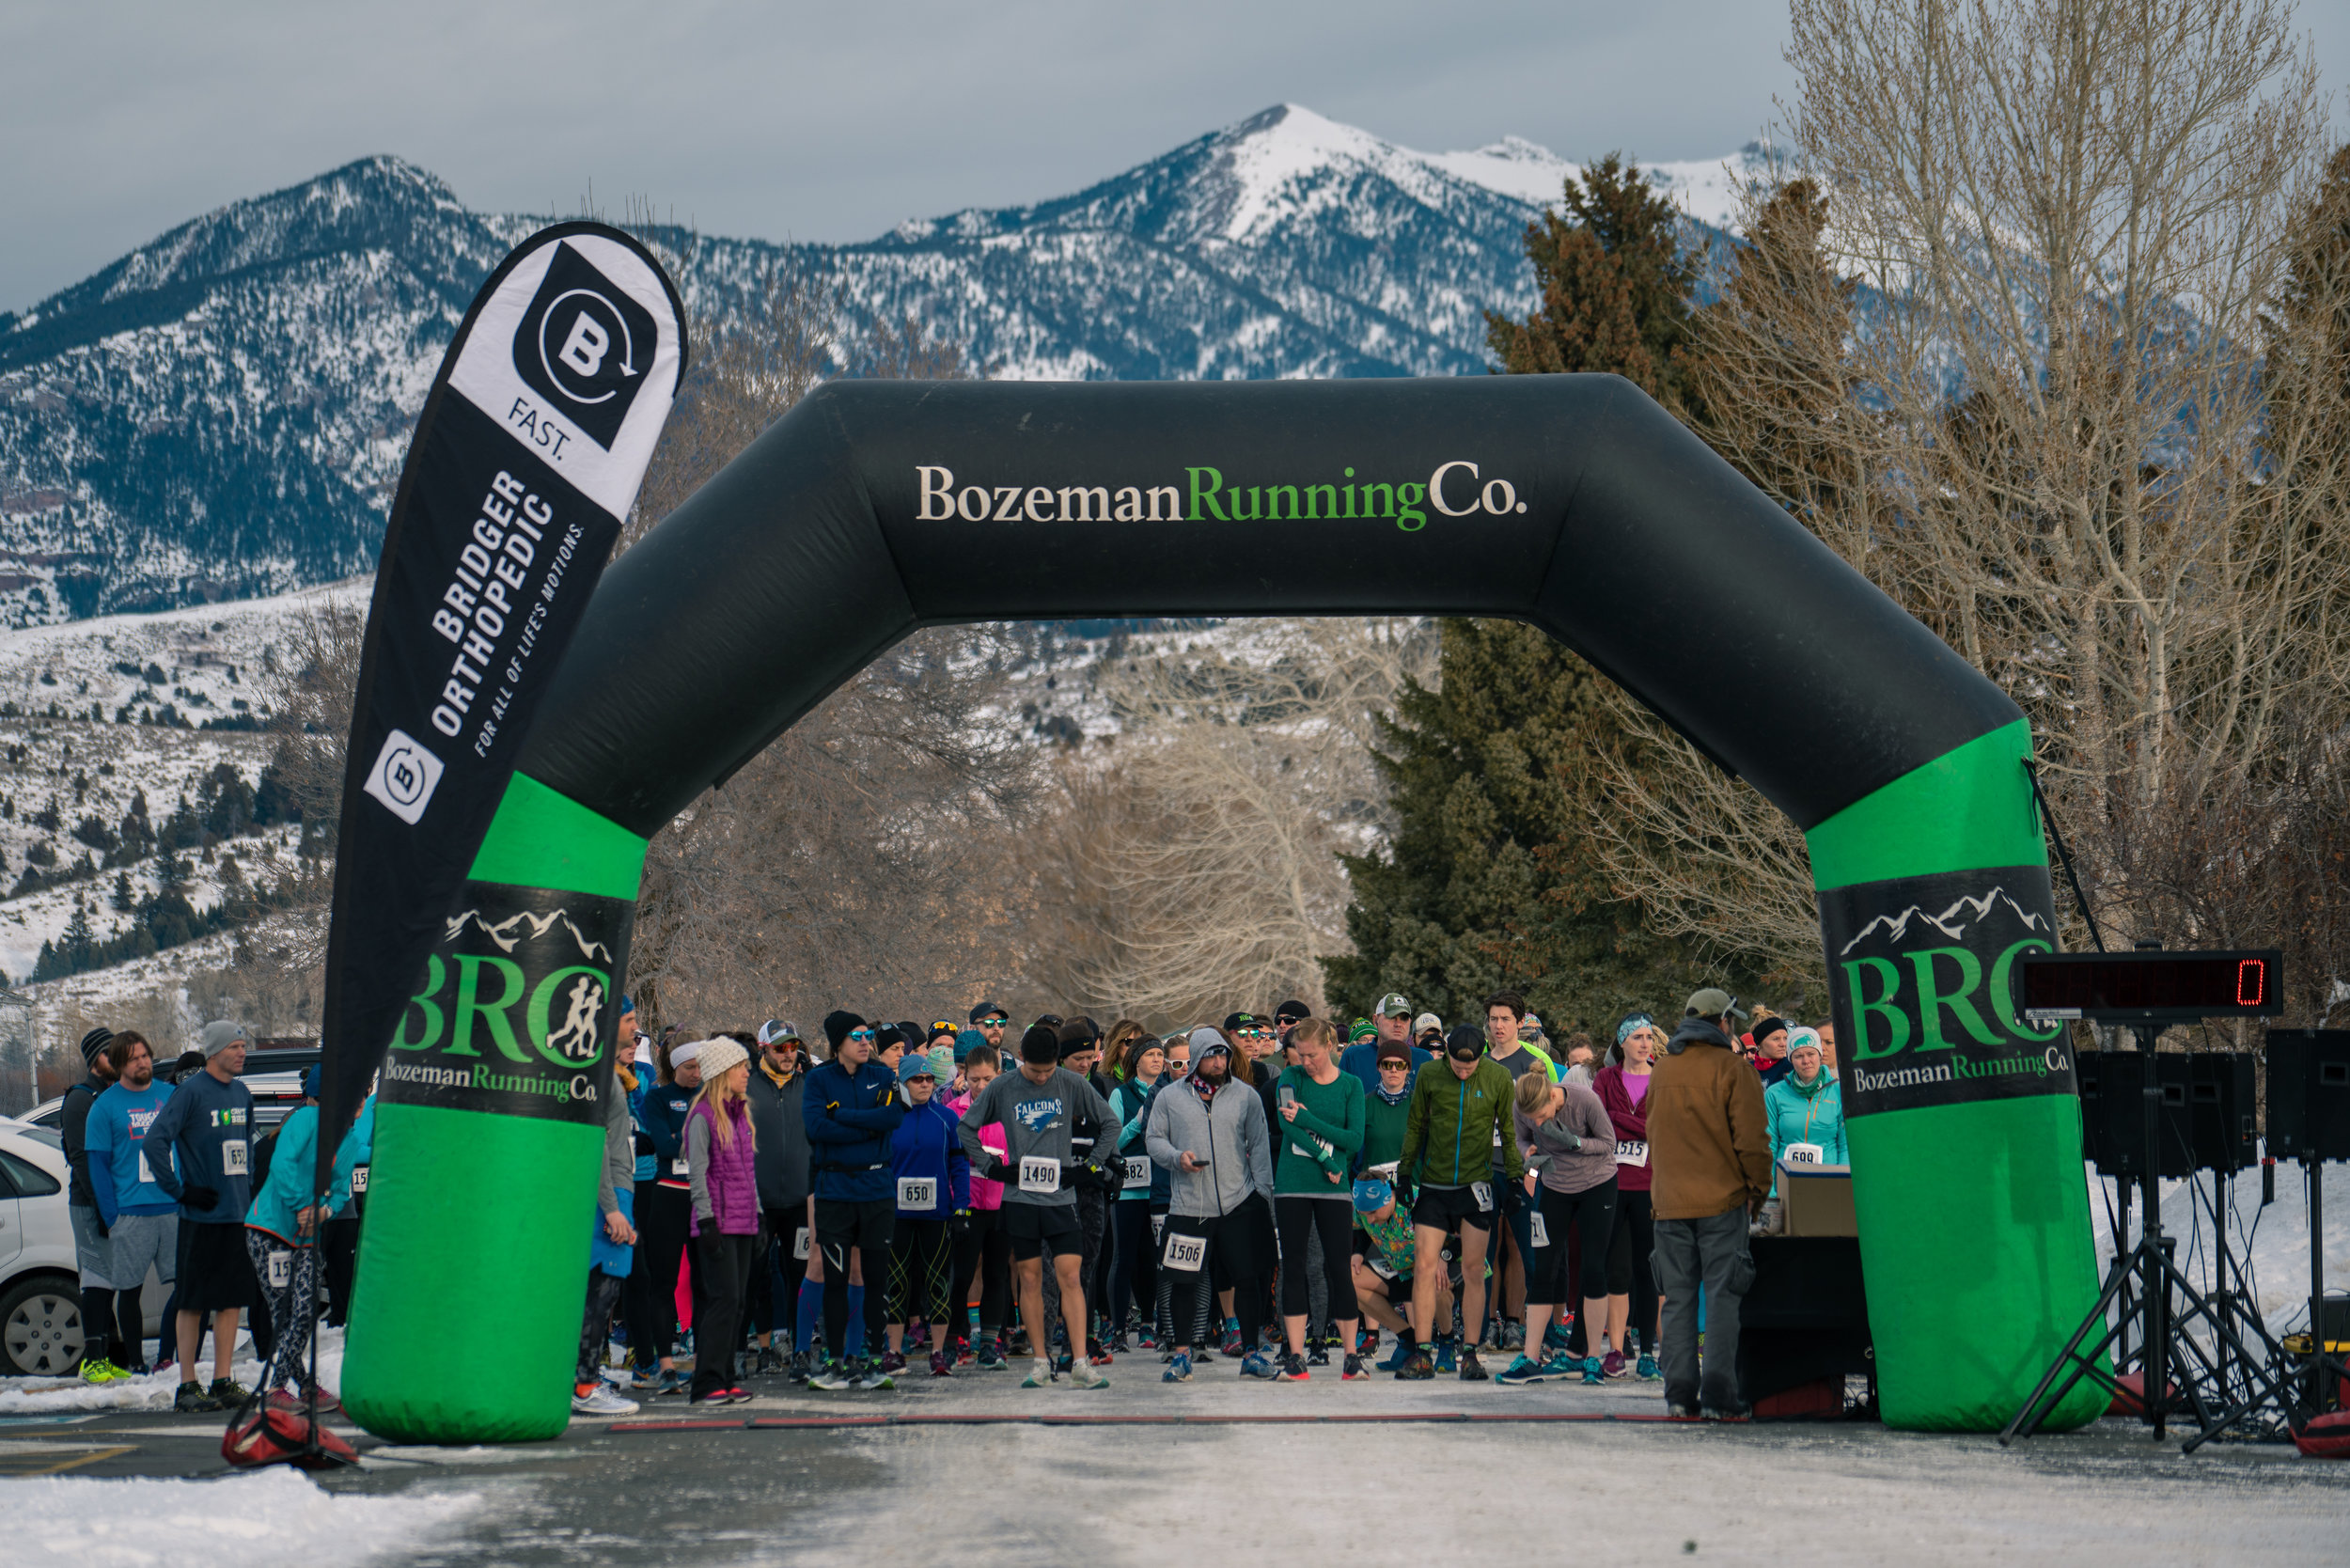 The starting line before Bozeman Running Co.'s racing of the Bear near Bozeman, Montana.